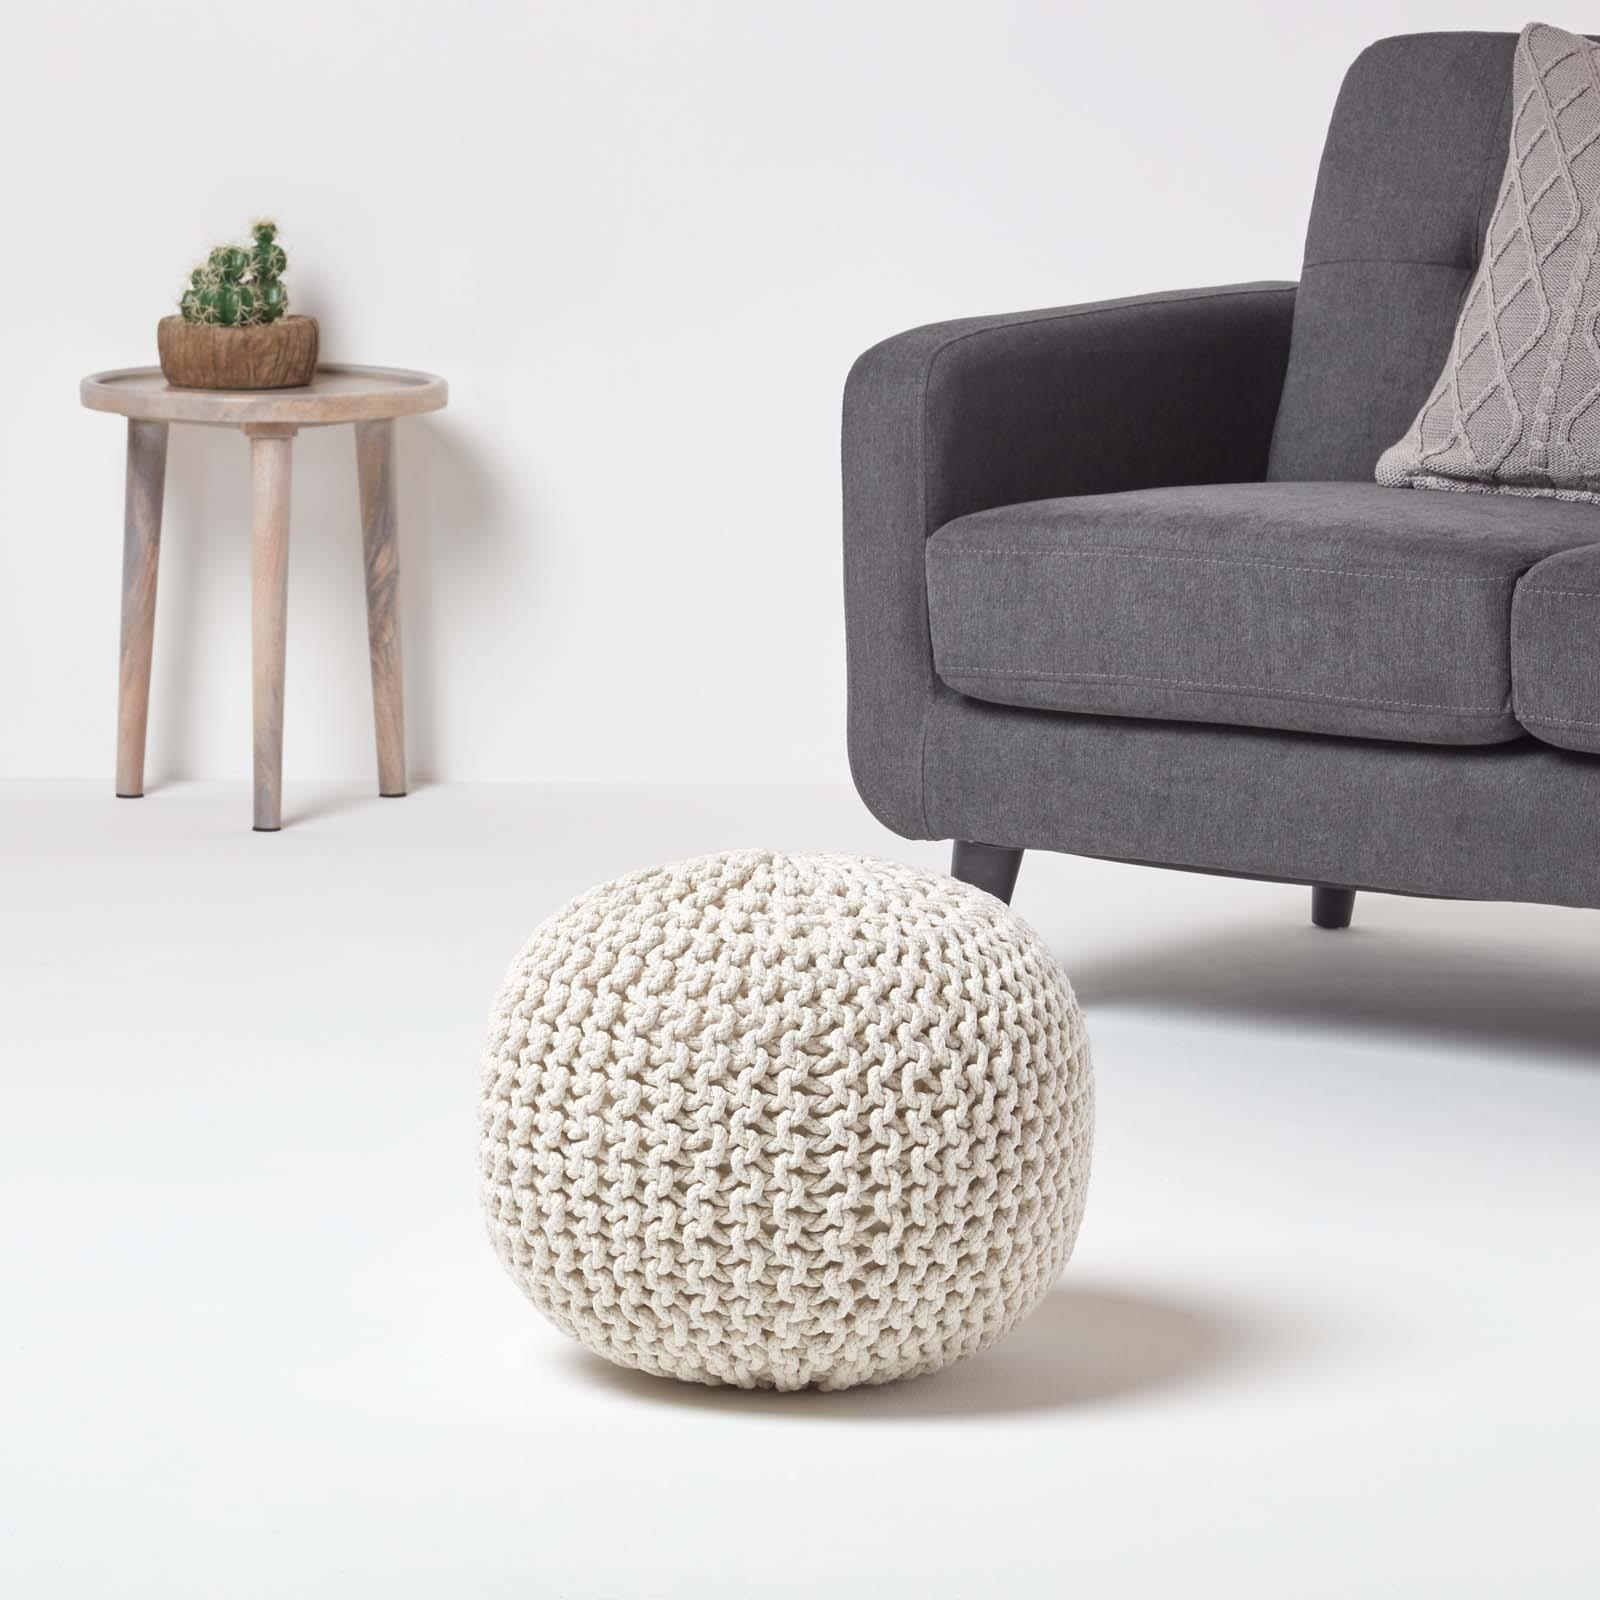 Hand-Knitted-100-Cotton-Pouffes-Round-Sphere-Or-Cube-Square-Chunky-Footstools thumbnail 98